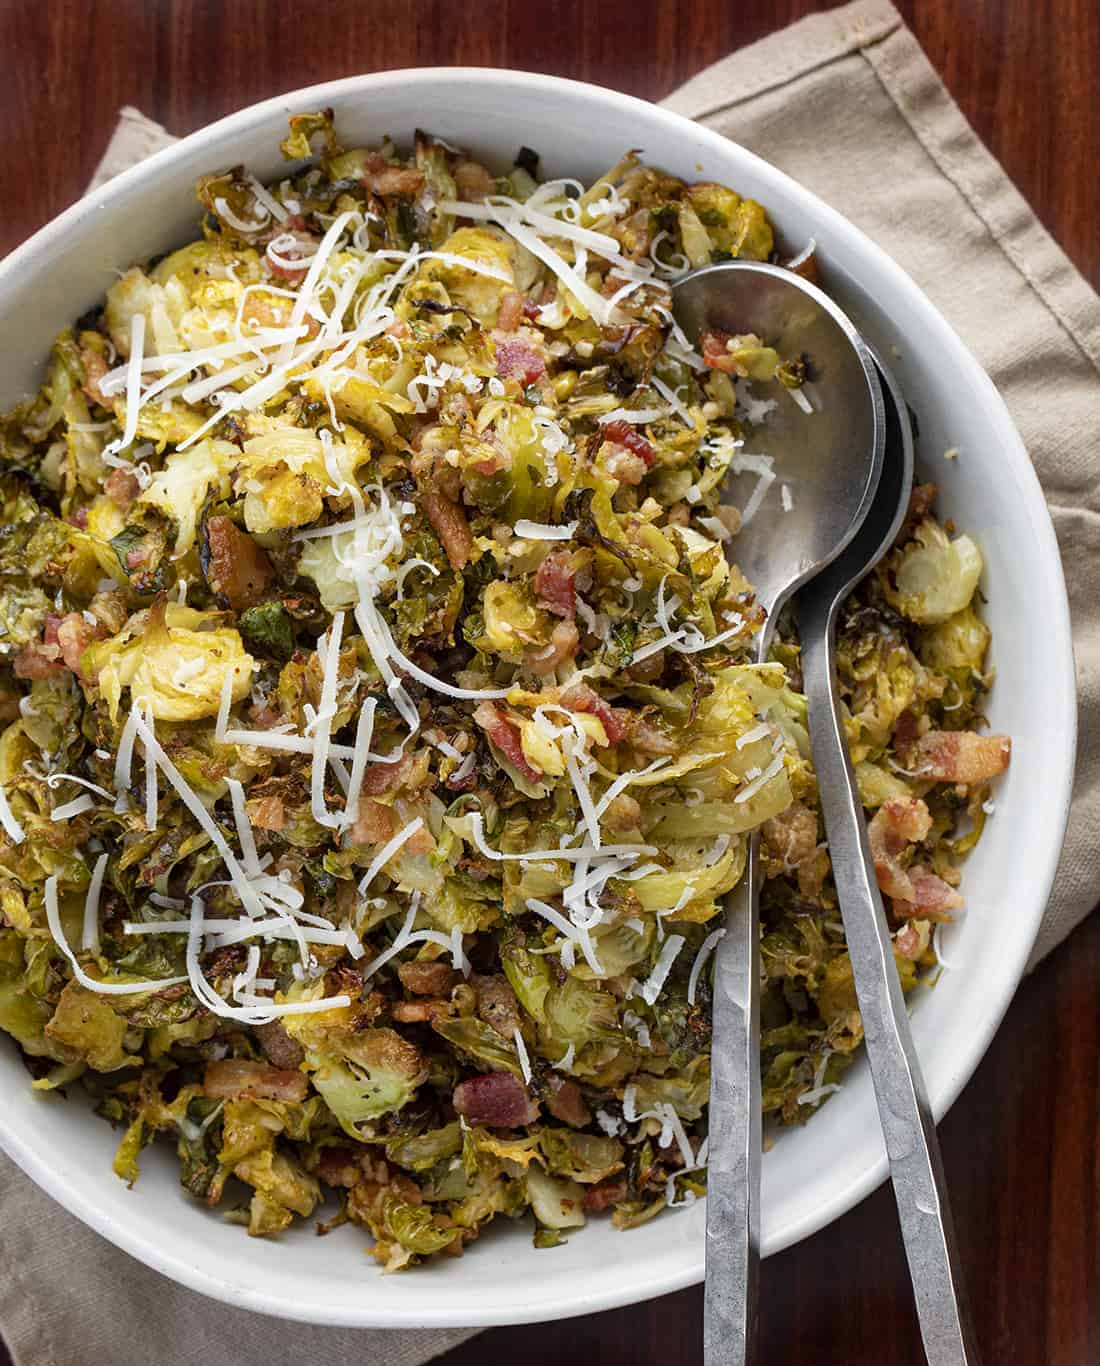 Shredded Brussels Sprouts in a Bowl